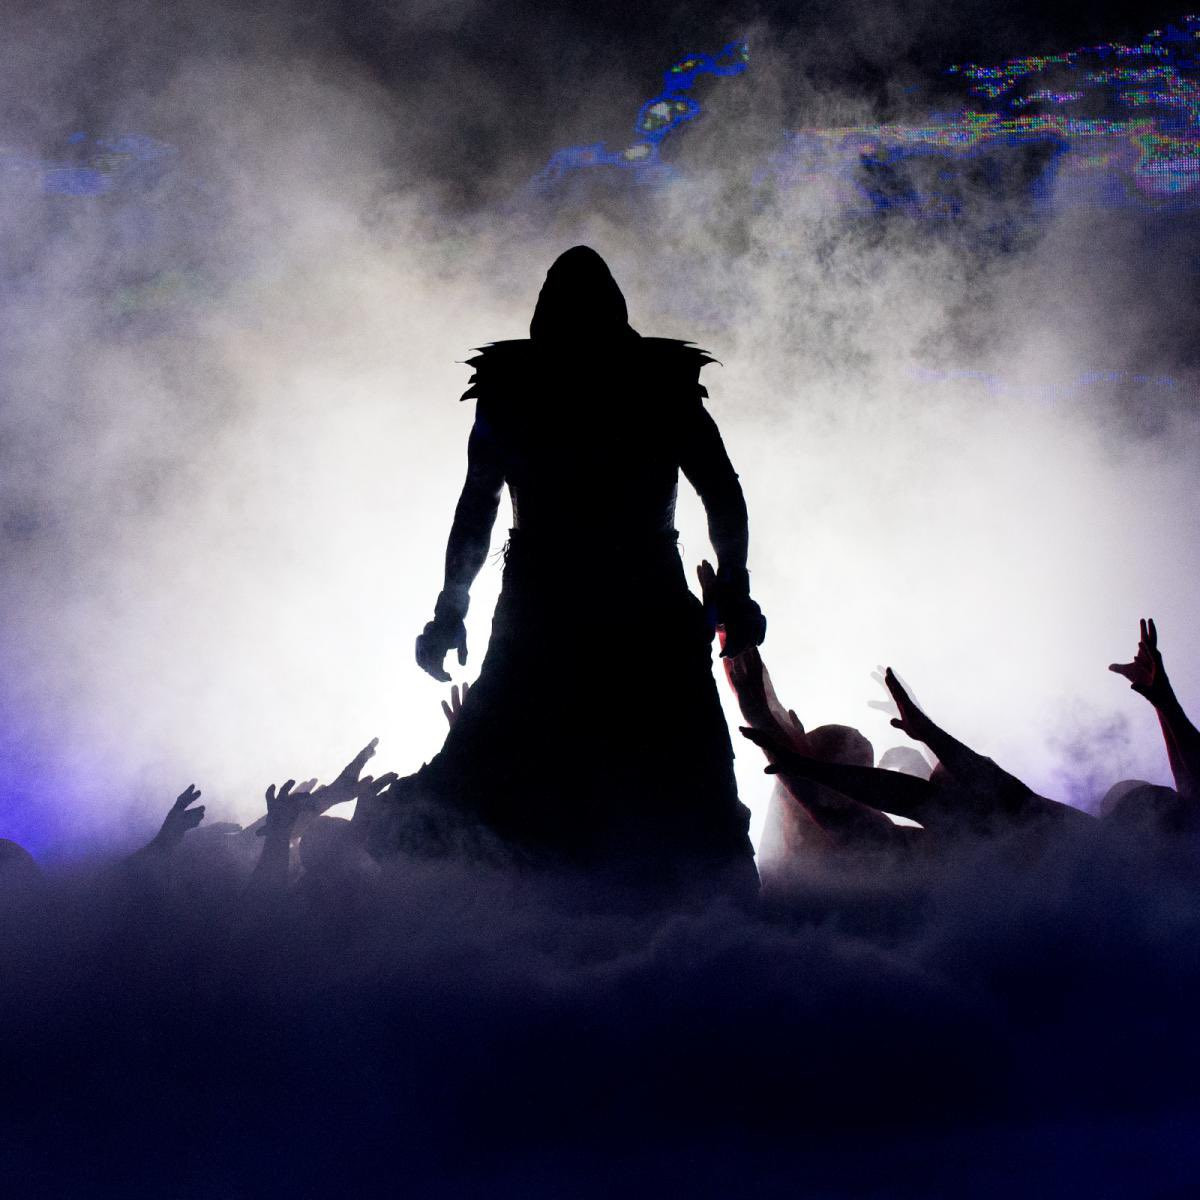 Wrestling legend, The Undertaker officially Confirms WWE Retirement after 30 year career (Photos/Video)